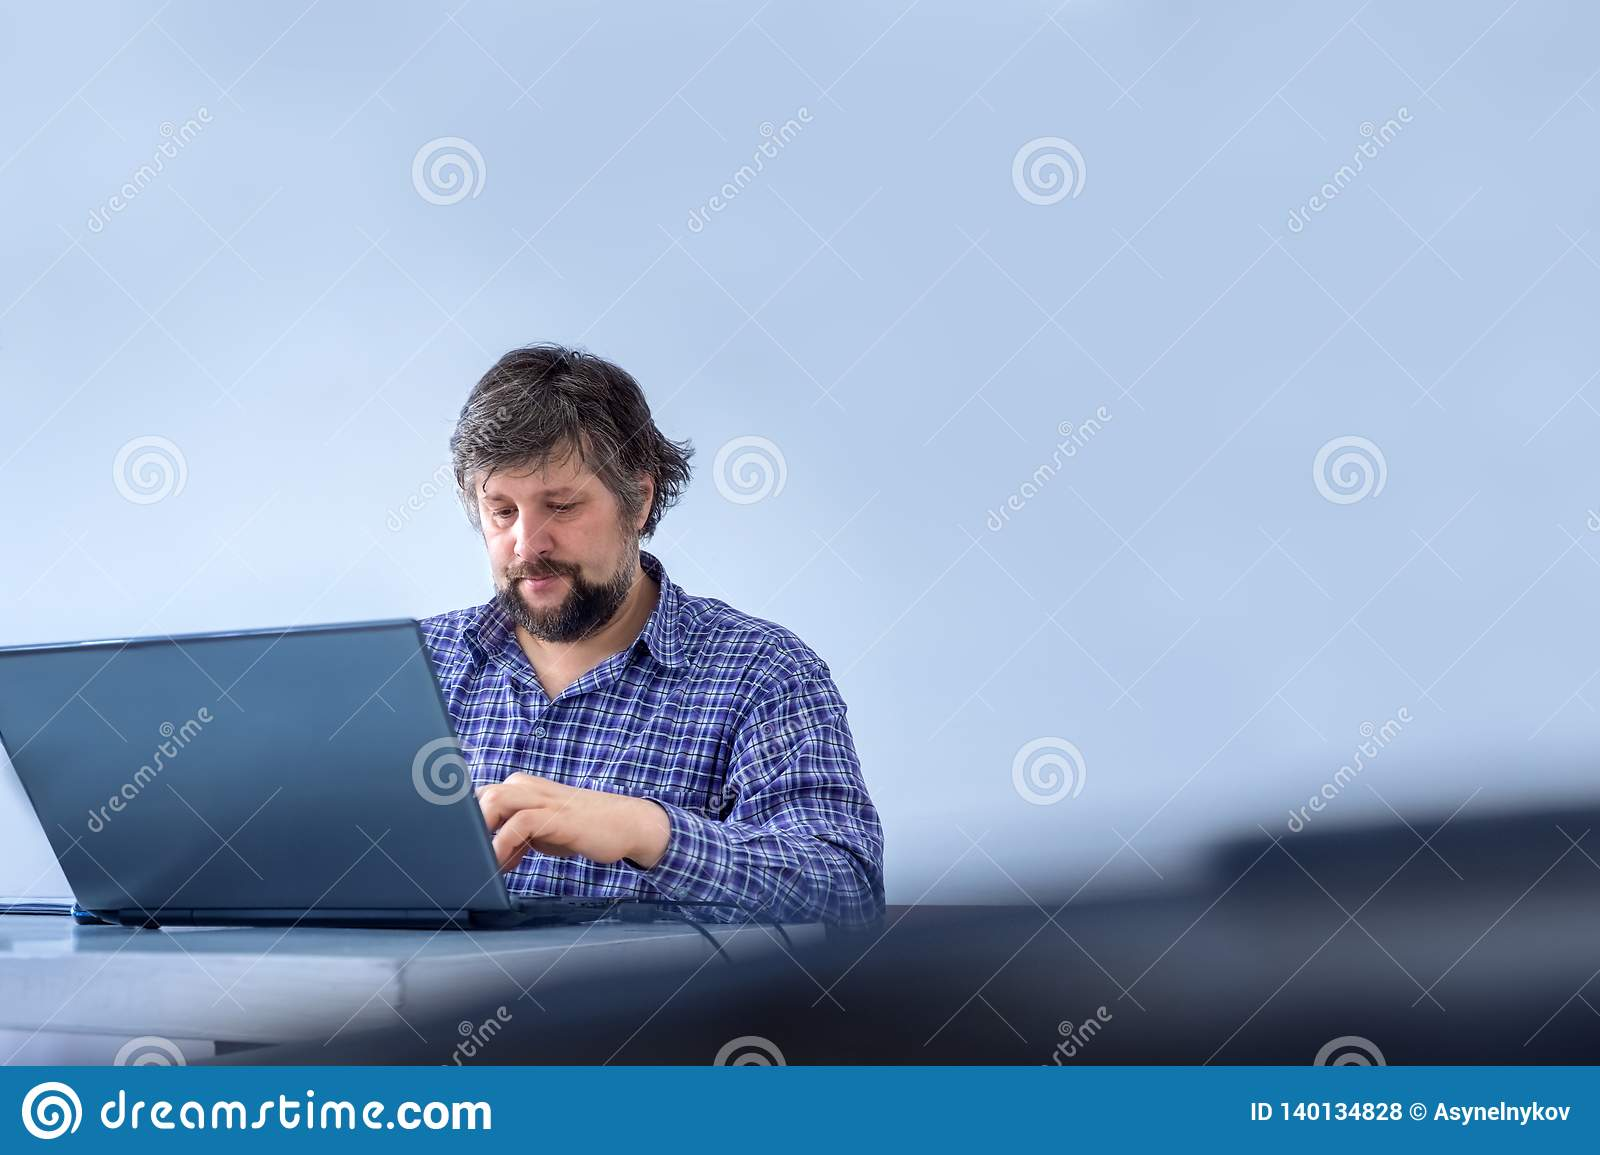 Businessman dressed casually. Office worker typing on laptop. Successful businessman working on laptop, computer